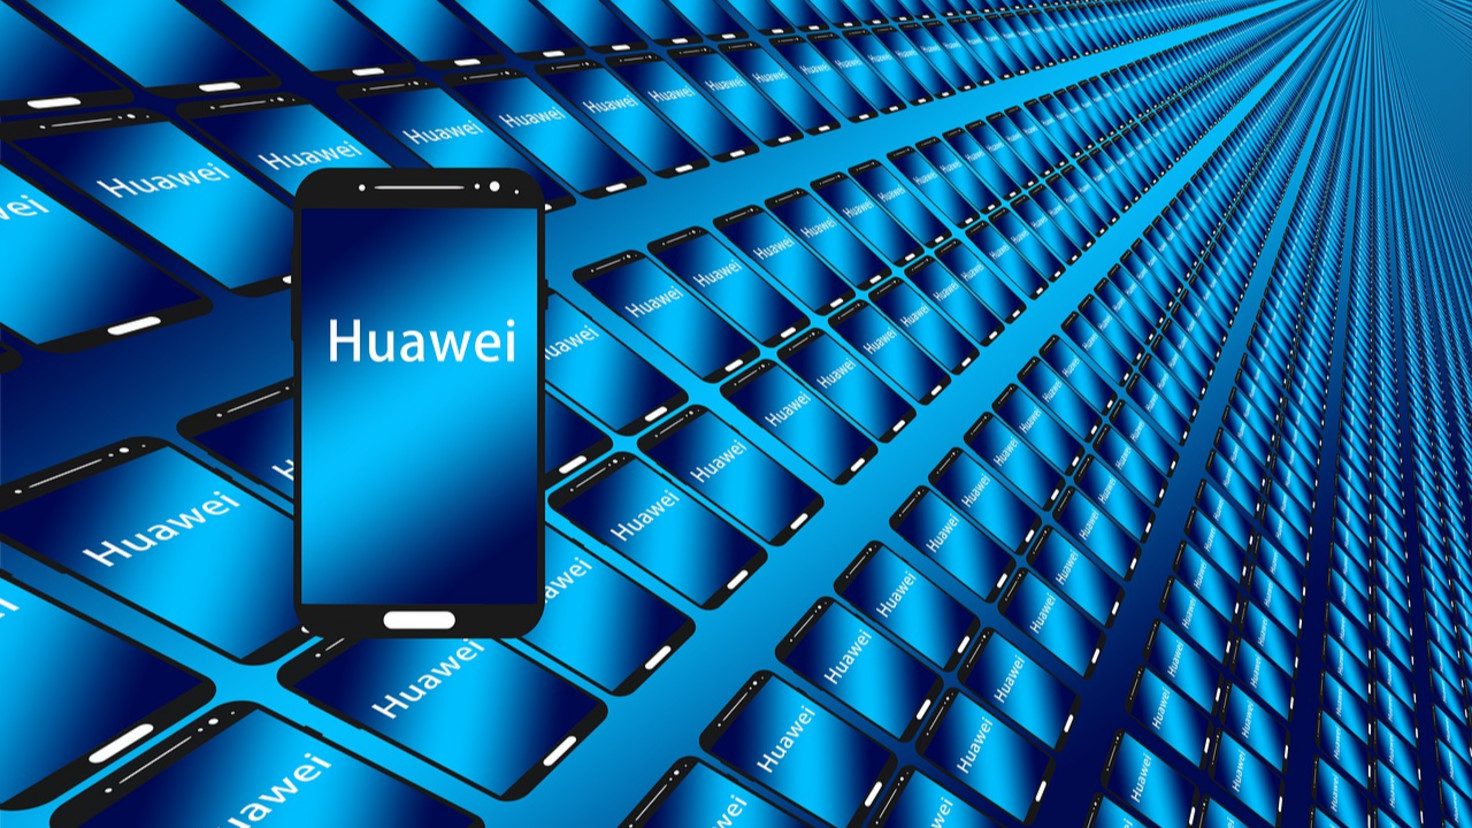 Huawei Founder Says US Ban May Cost Company $30 Billion